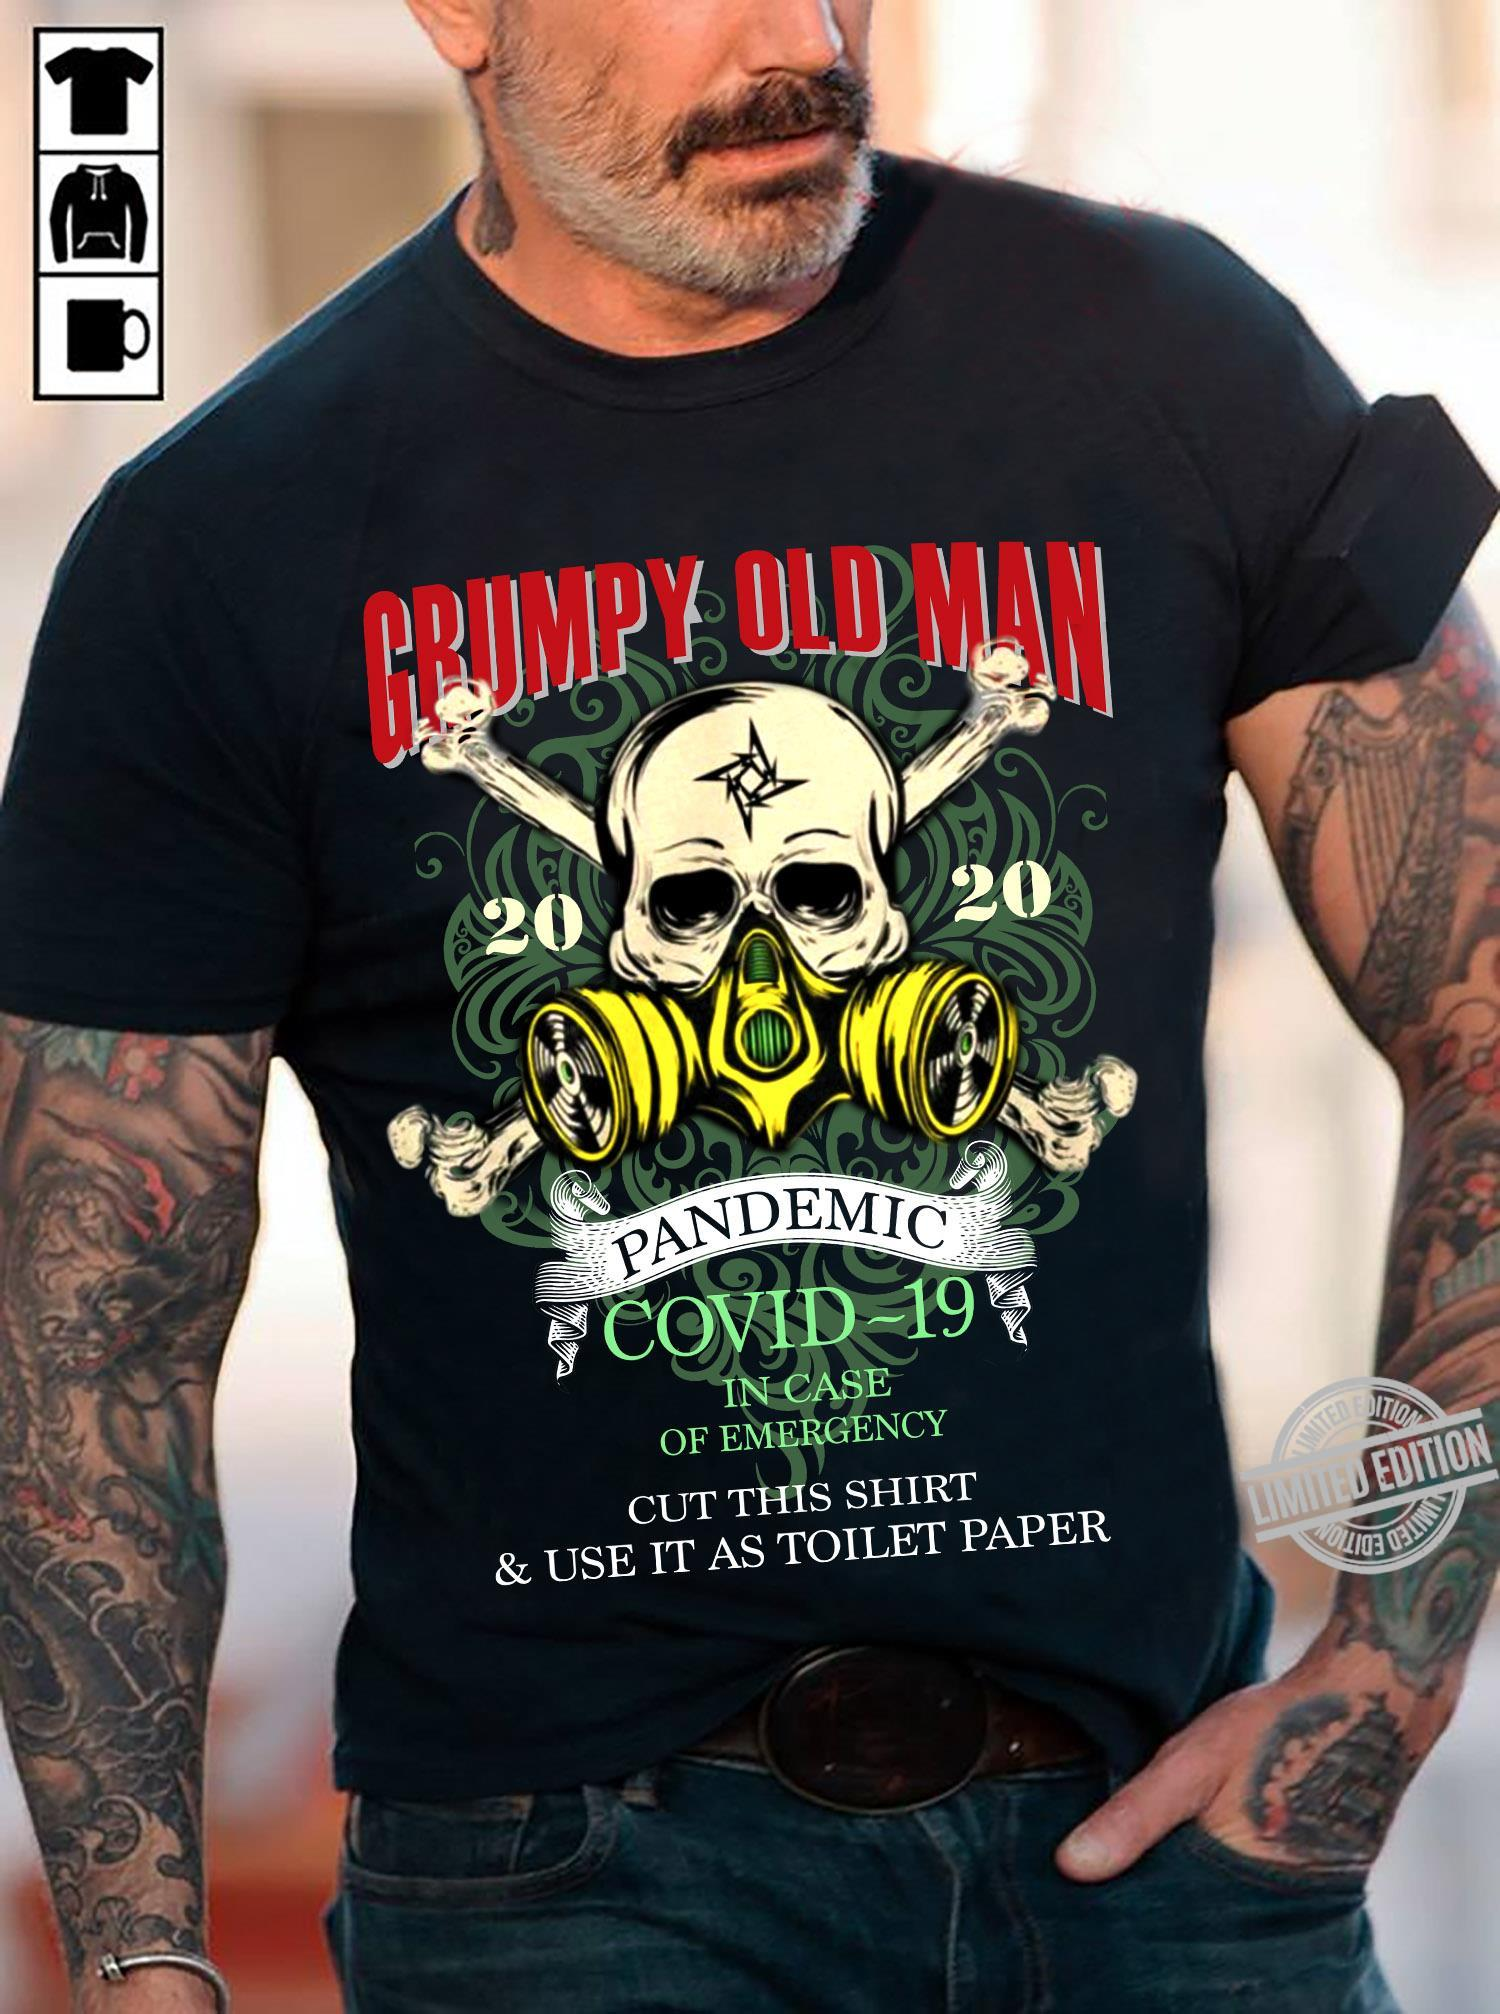 Grumpy Old Man Pandemic Covid-19 In Case Of Emergency Cut This Shirt & Use It As Toilet Paper Shirt